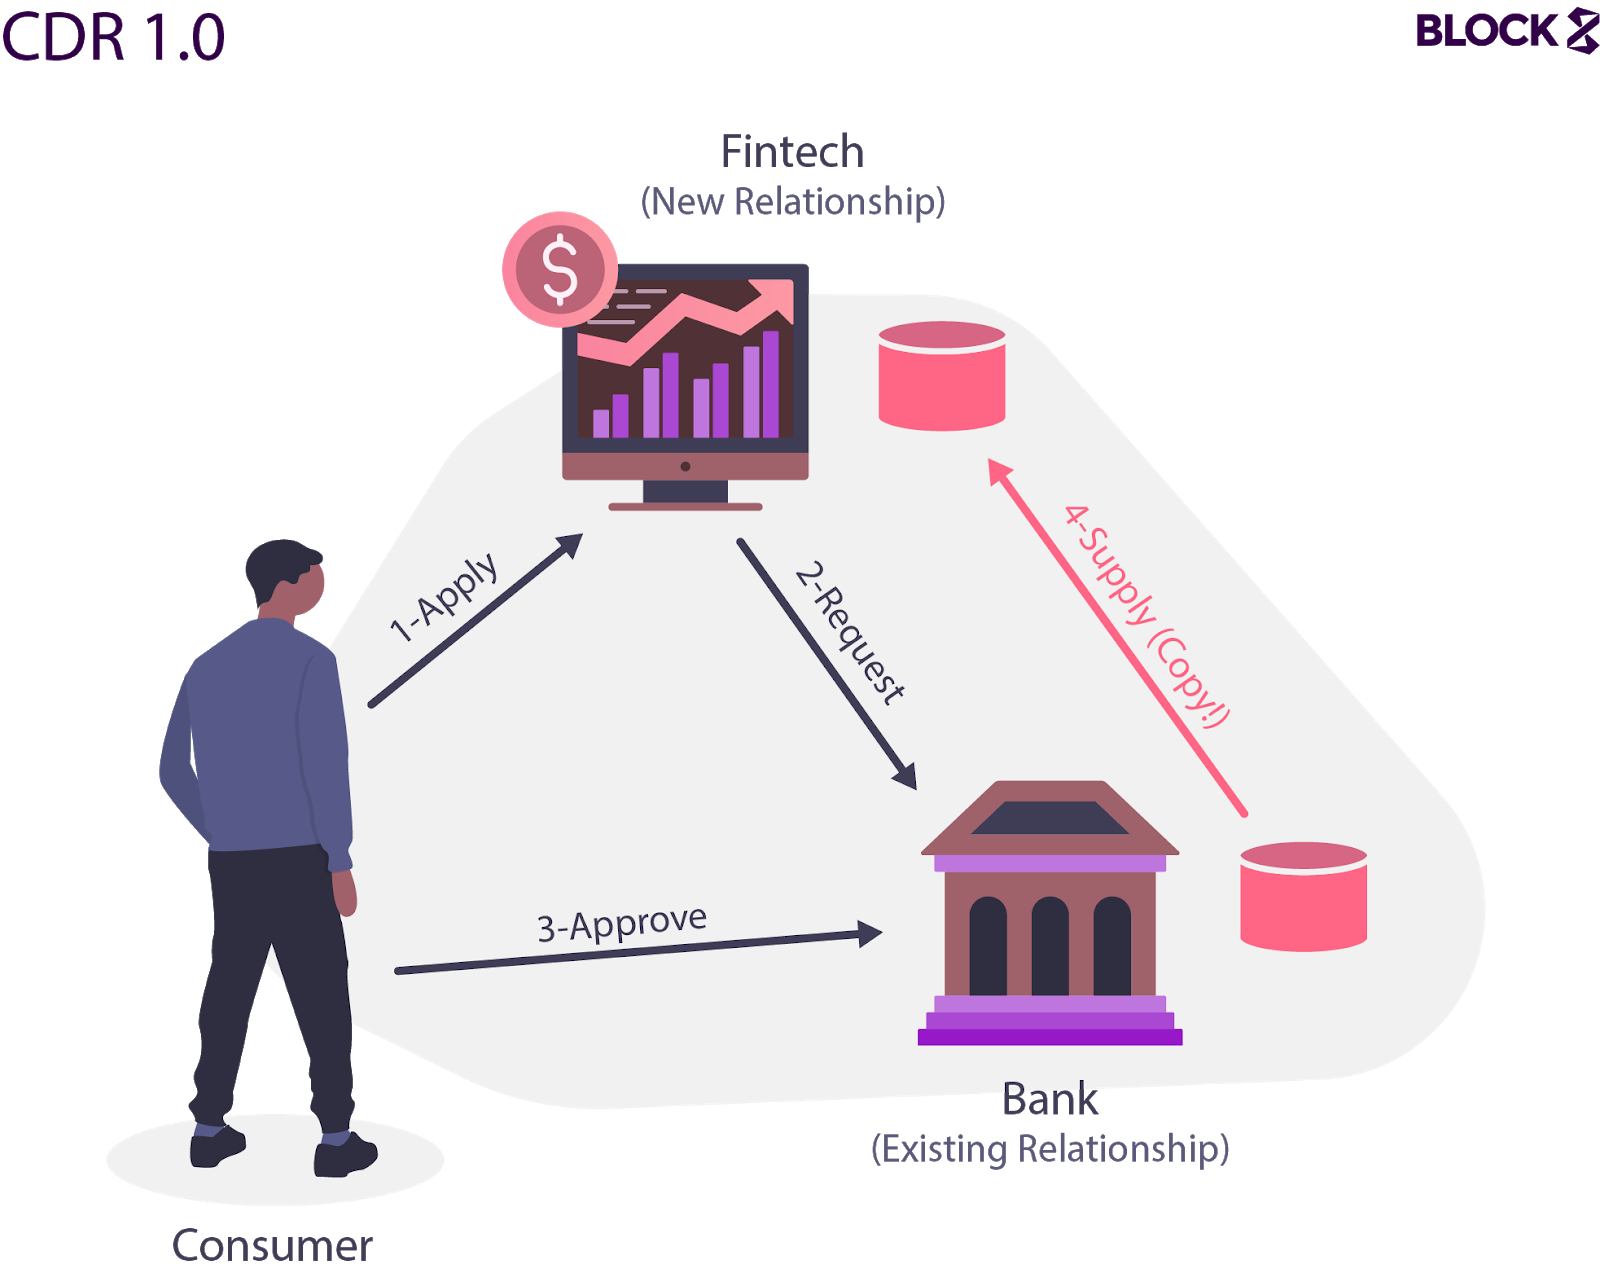 Conceptual model of the current implementation of the Consumer Data Right